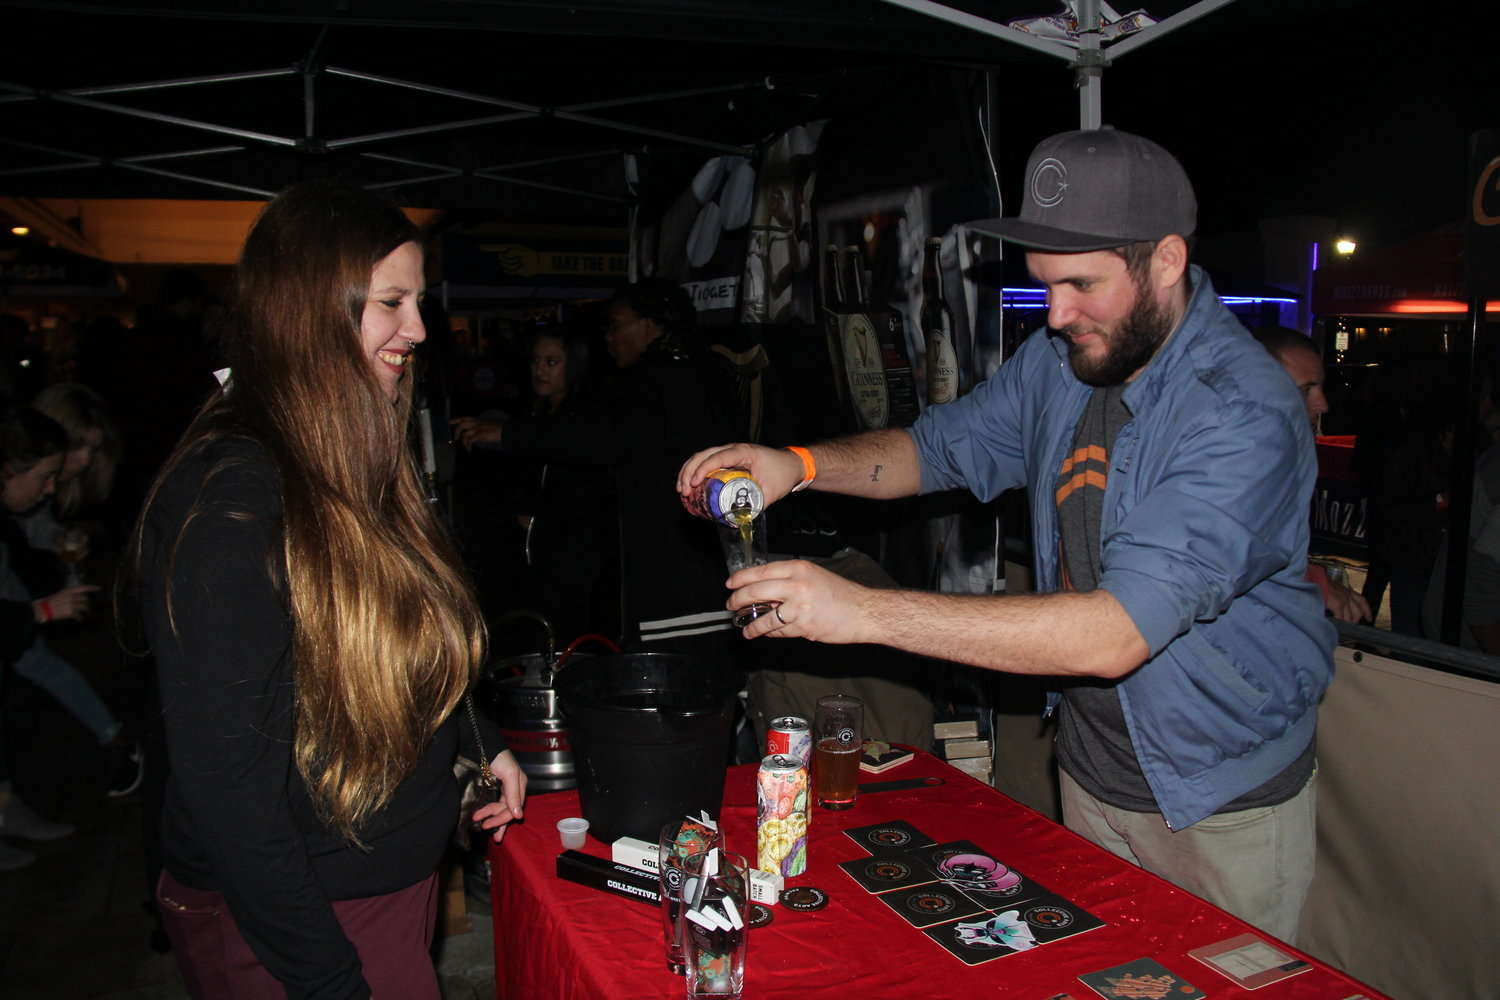 Brian Murrary, of Collective Arts Brewery from Hamilton, Ontario poured a sample of beer for Alisa Peters, from Carle Place.